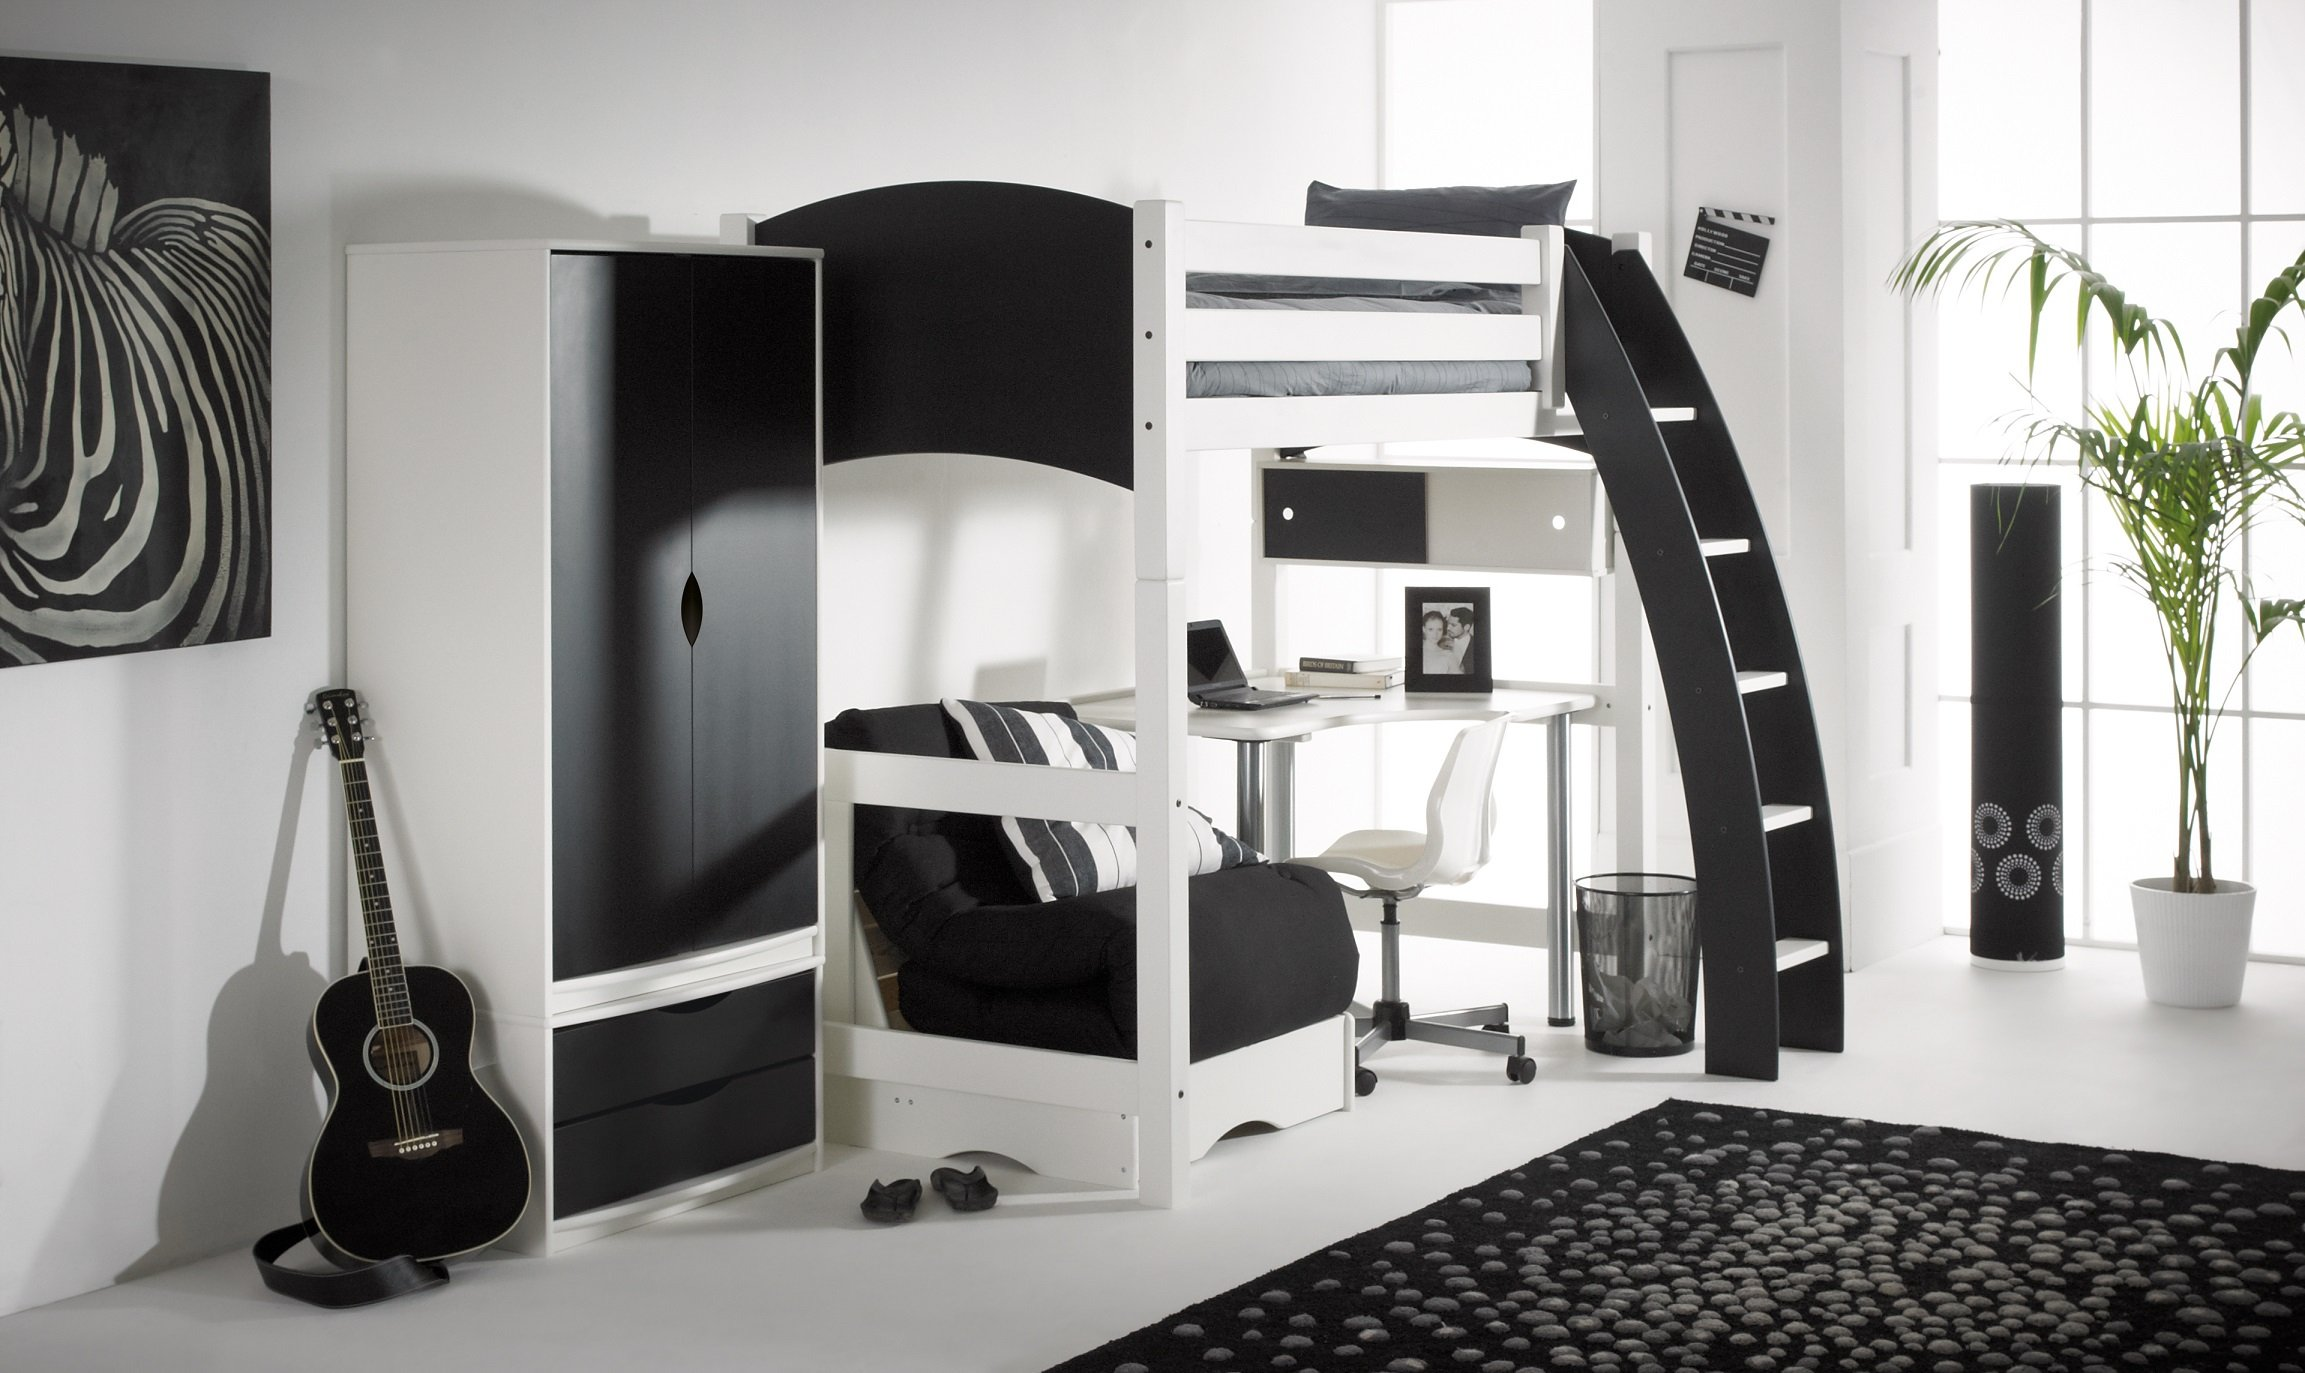 Picture of: Loft Bed Convertible High Sleeper Bed Desk Futon Wardrobe Drawers